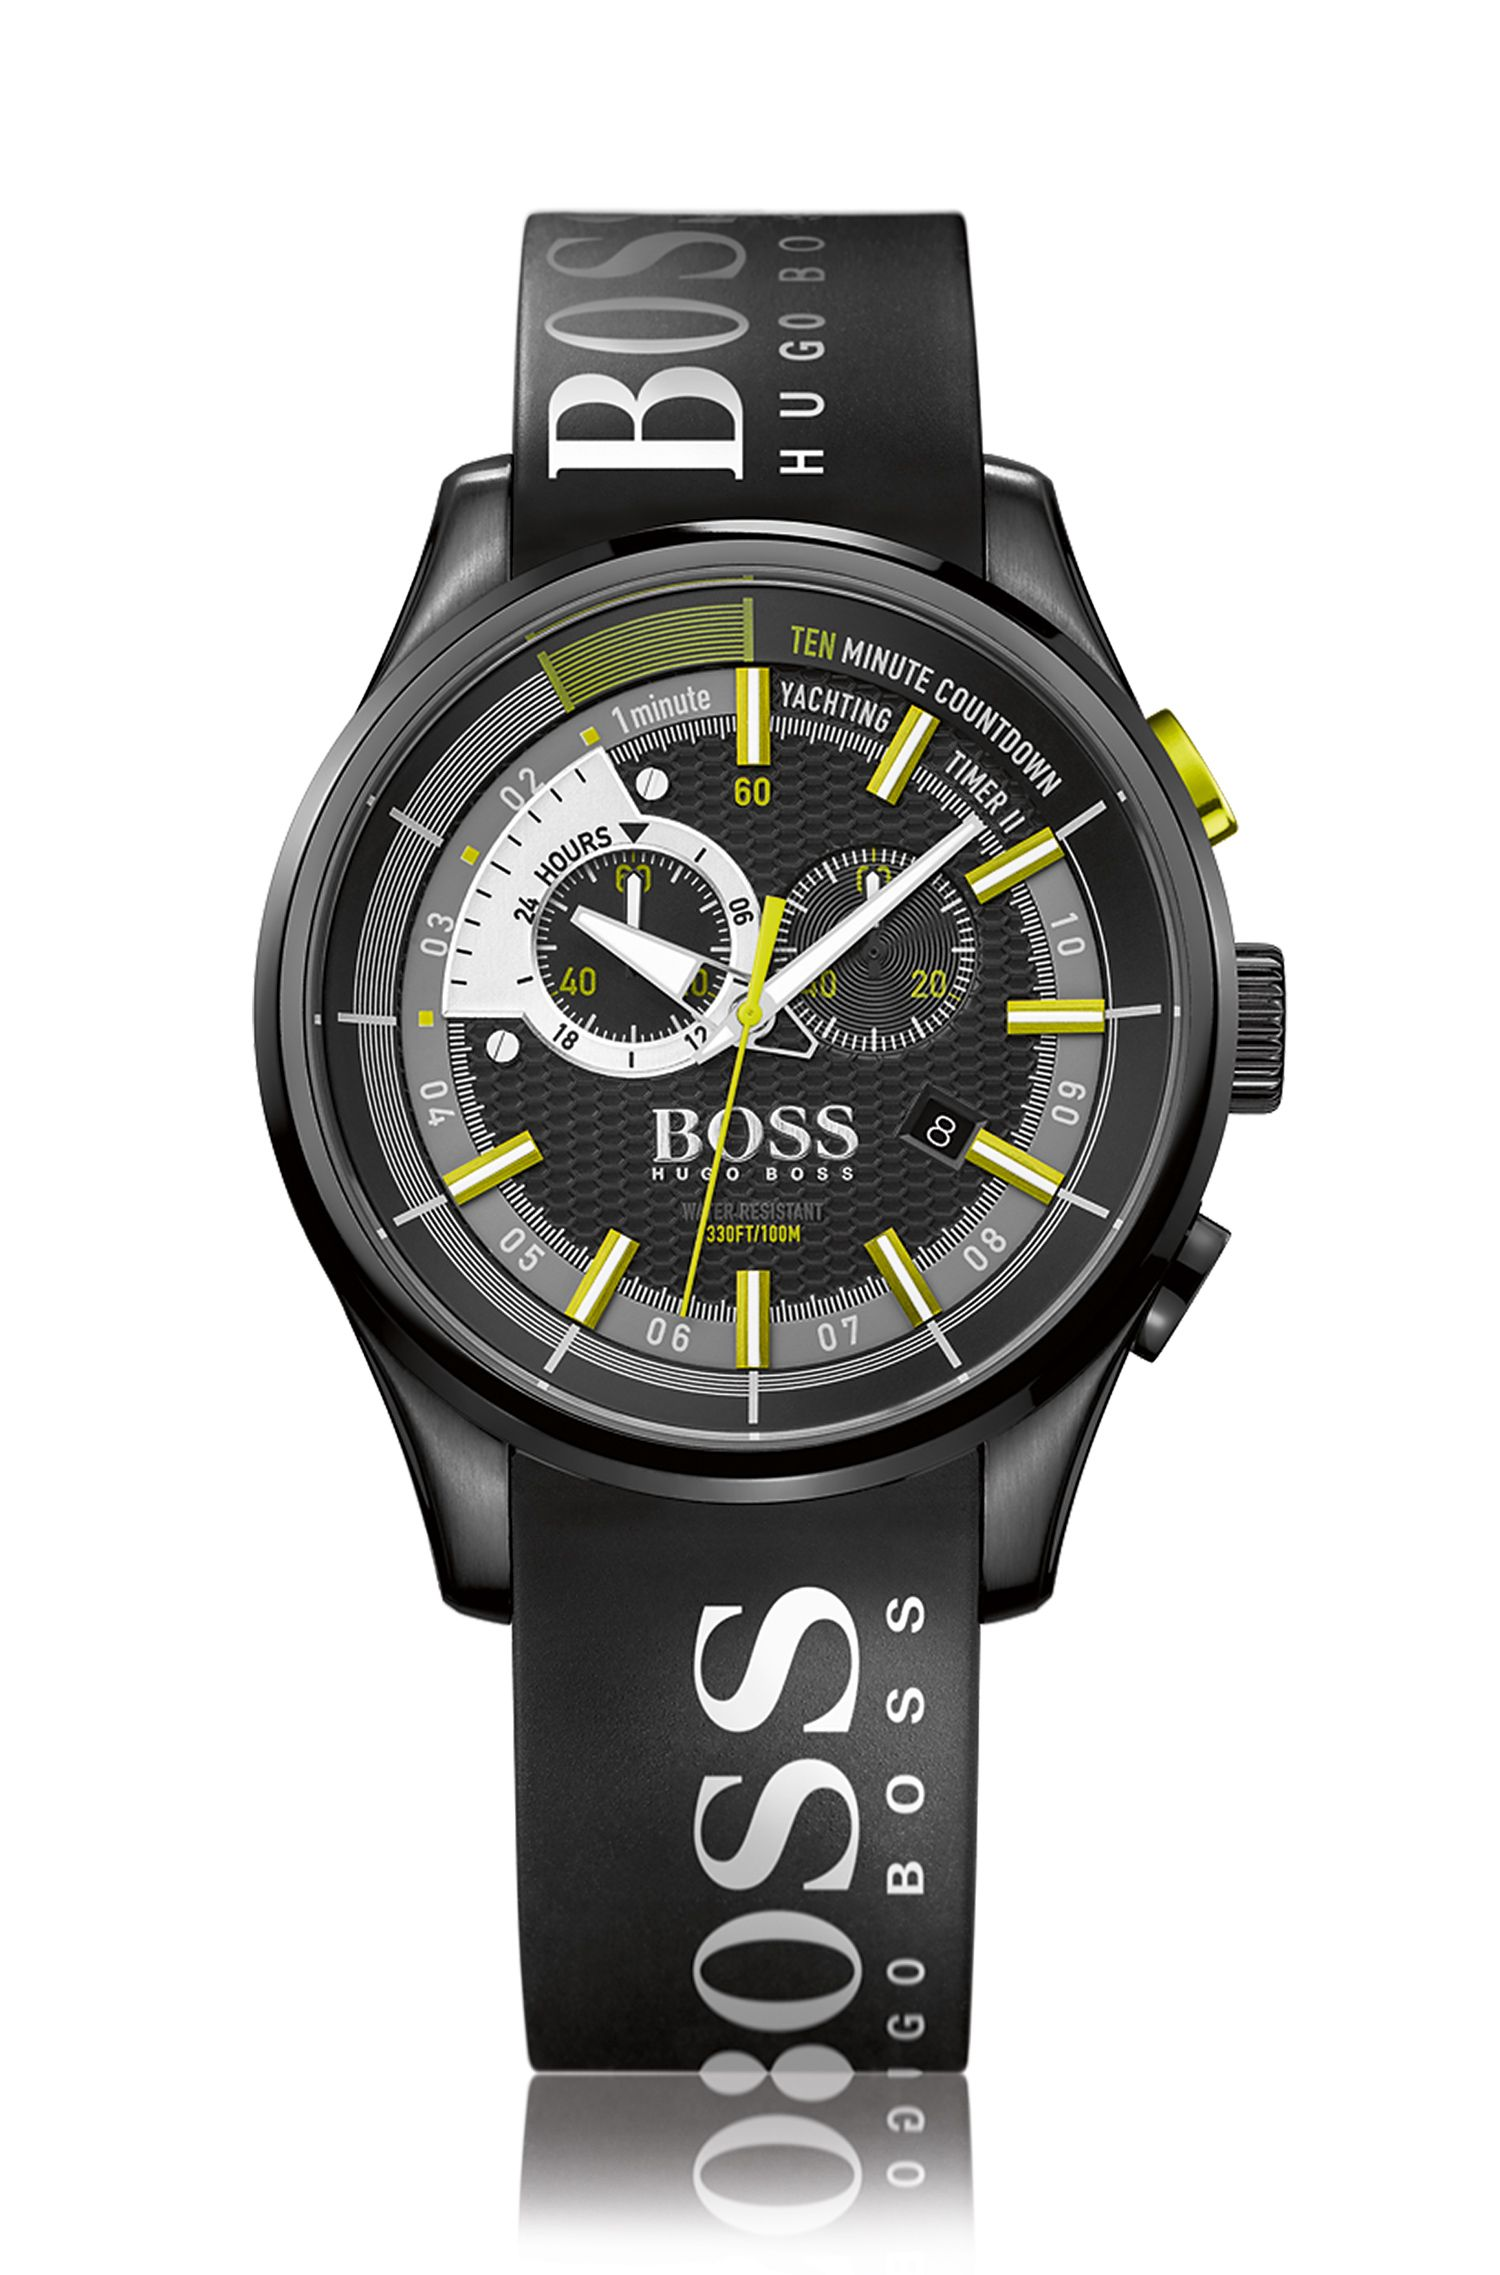 Blackened stainless-steel regatta chronograph watch with countdown function